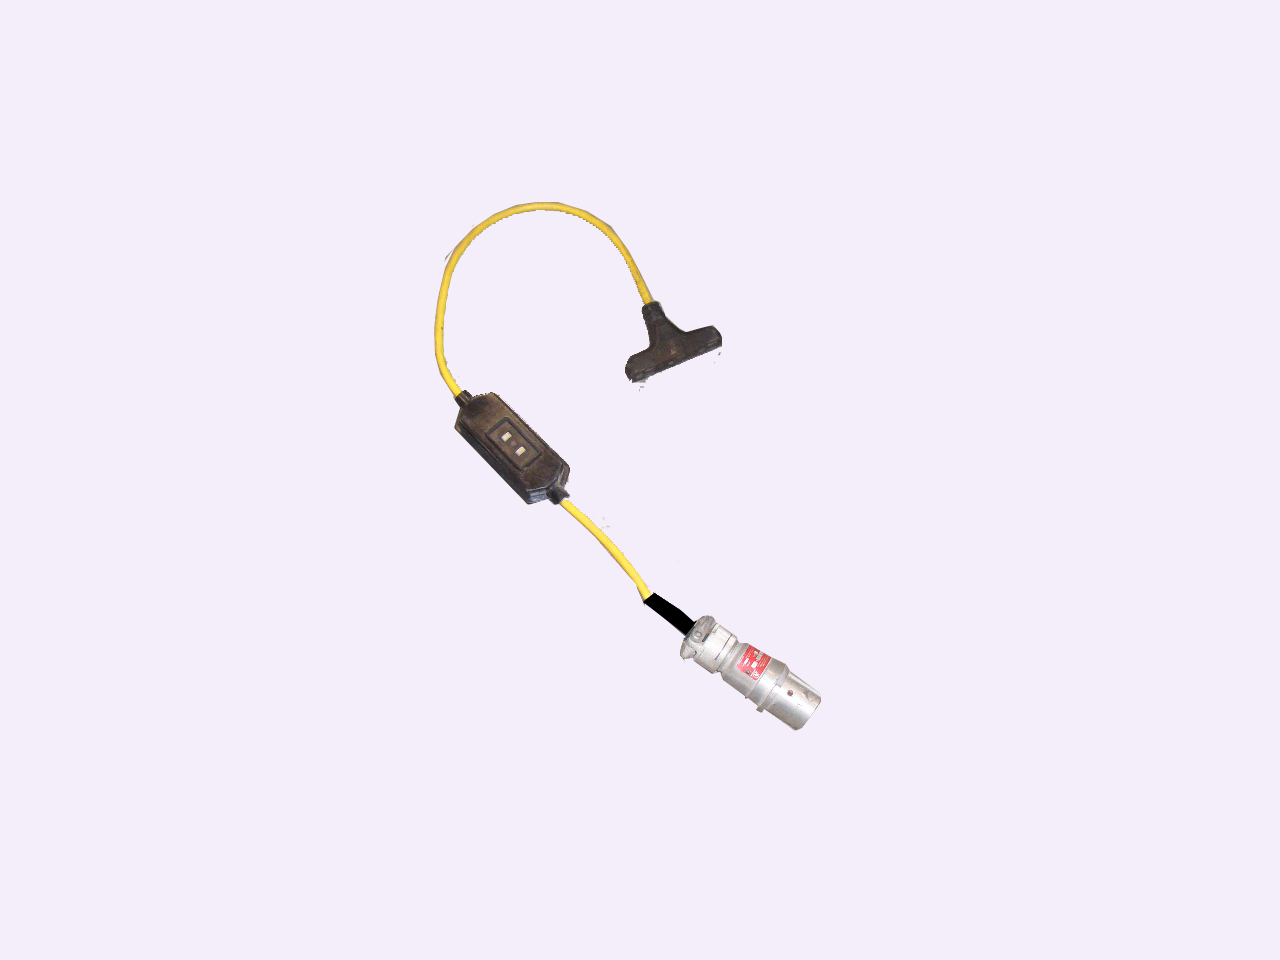 RNT: GF-2: GFI In-line Circuit Protection Product: 12Ov, 20amp